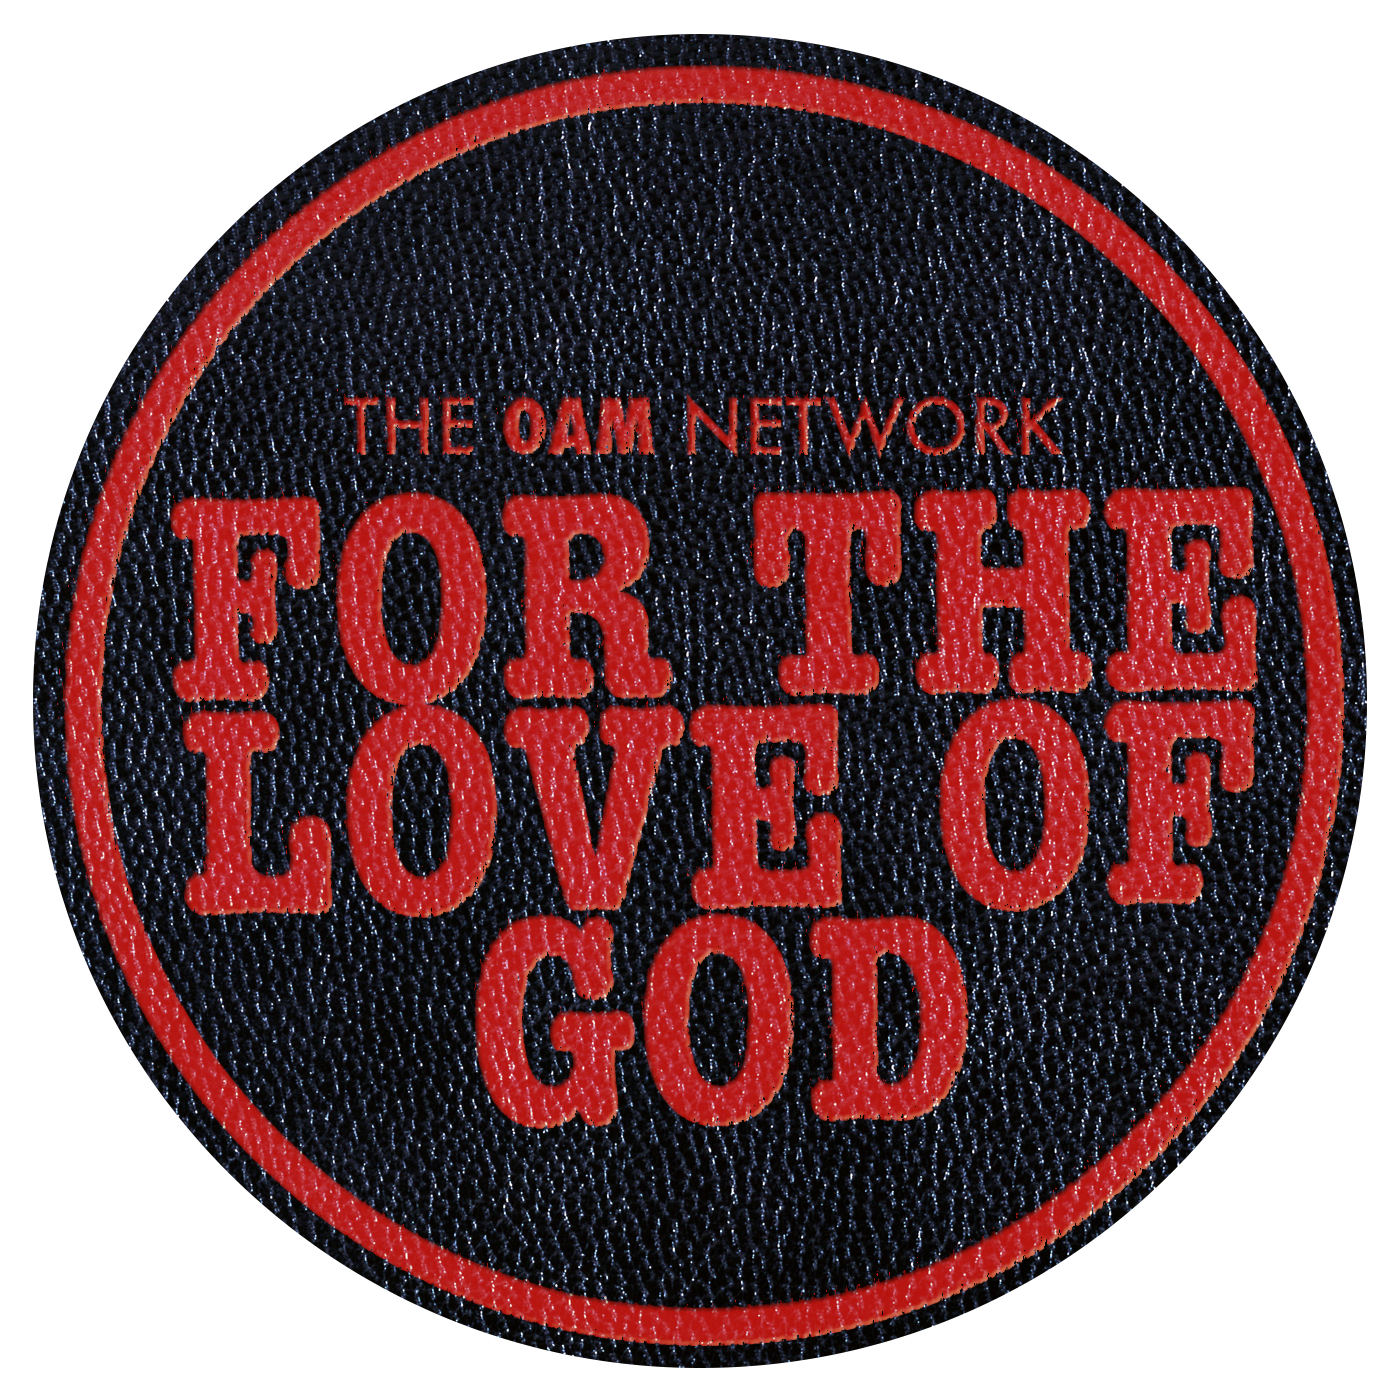 For The Love Of God The OAM Network